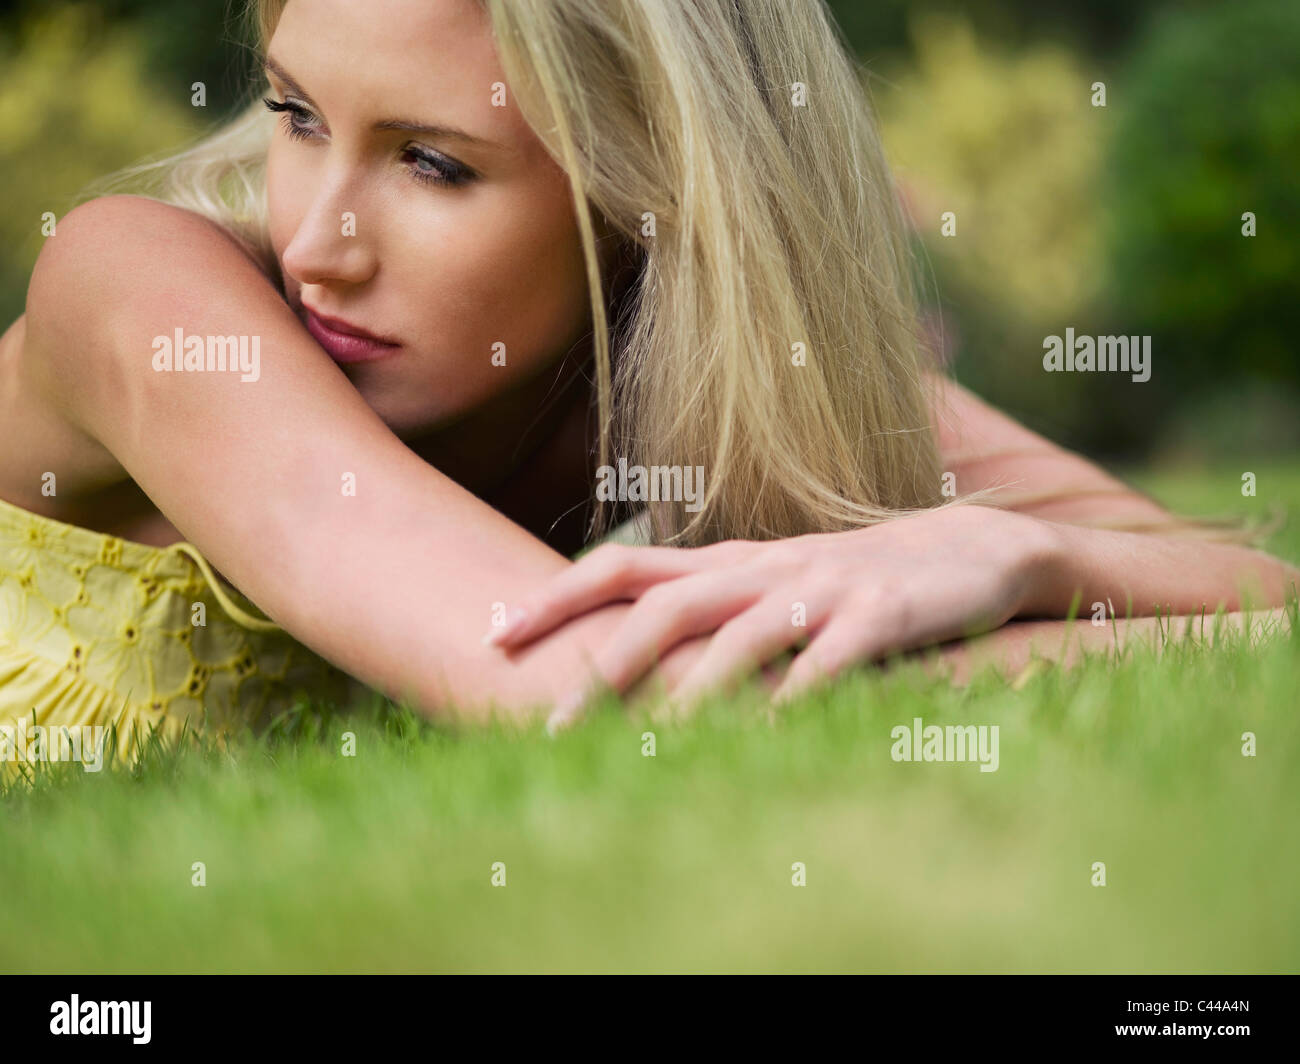 A woman lying in the summer grass, close-up, surface level - Stock Image